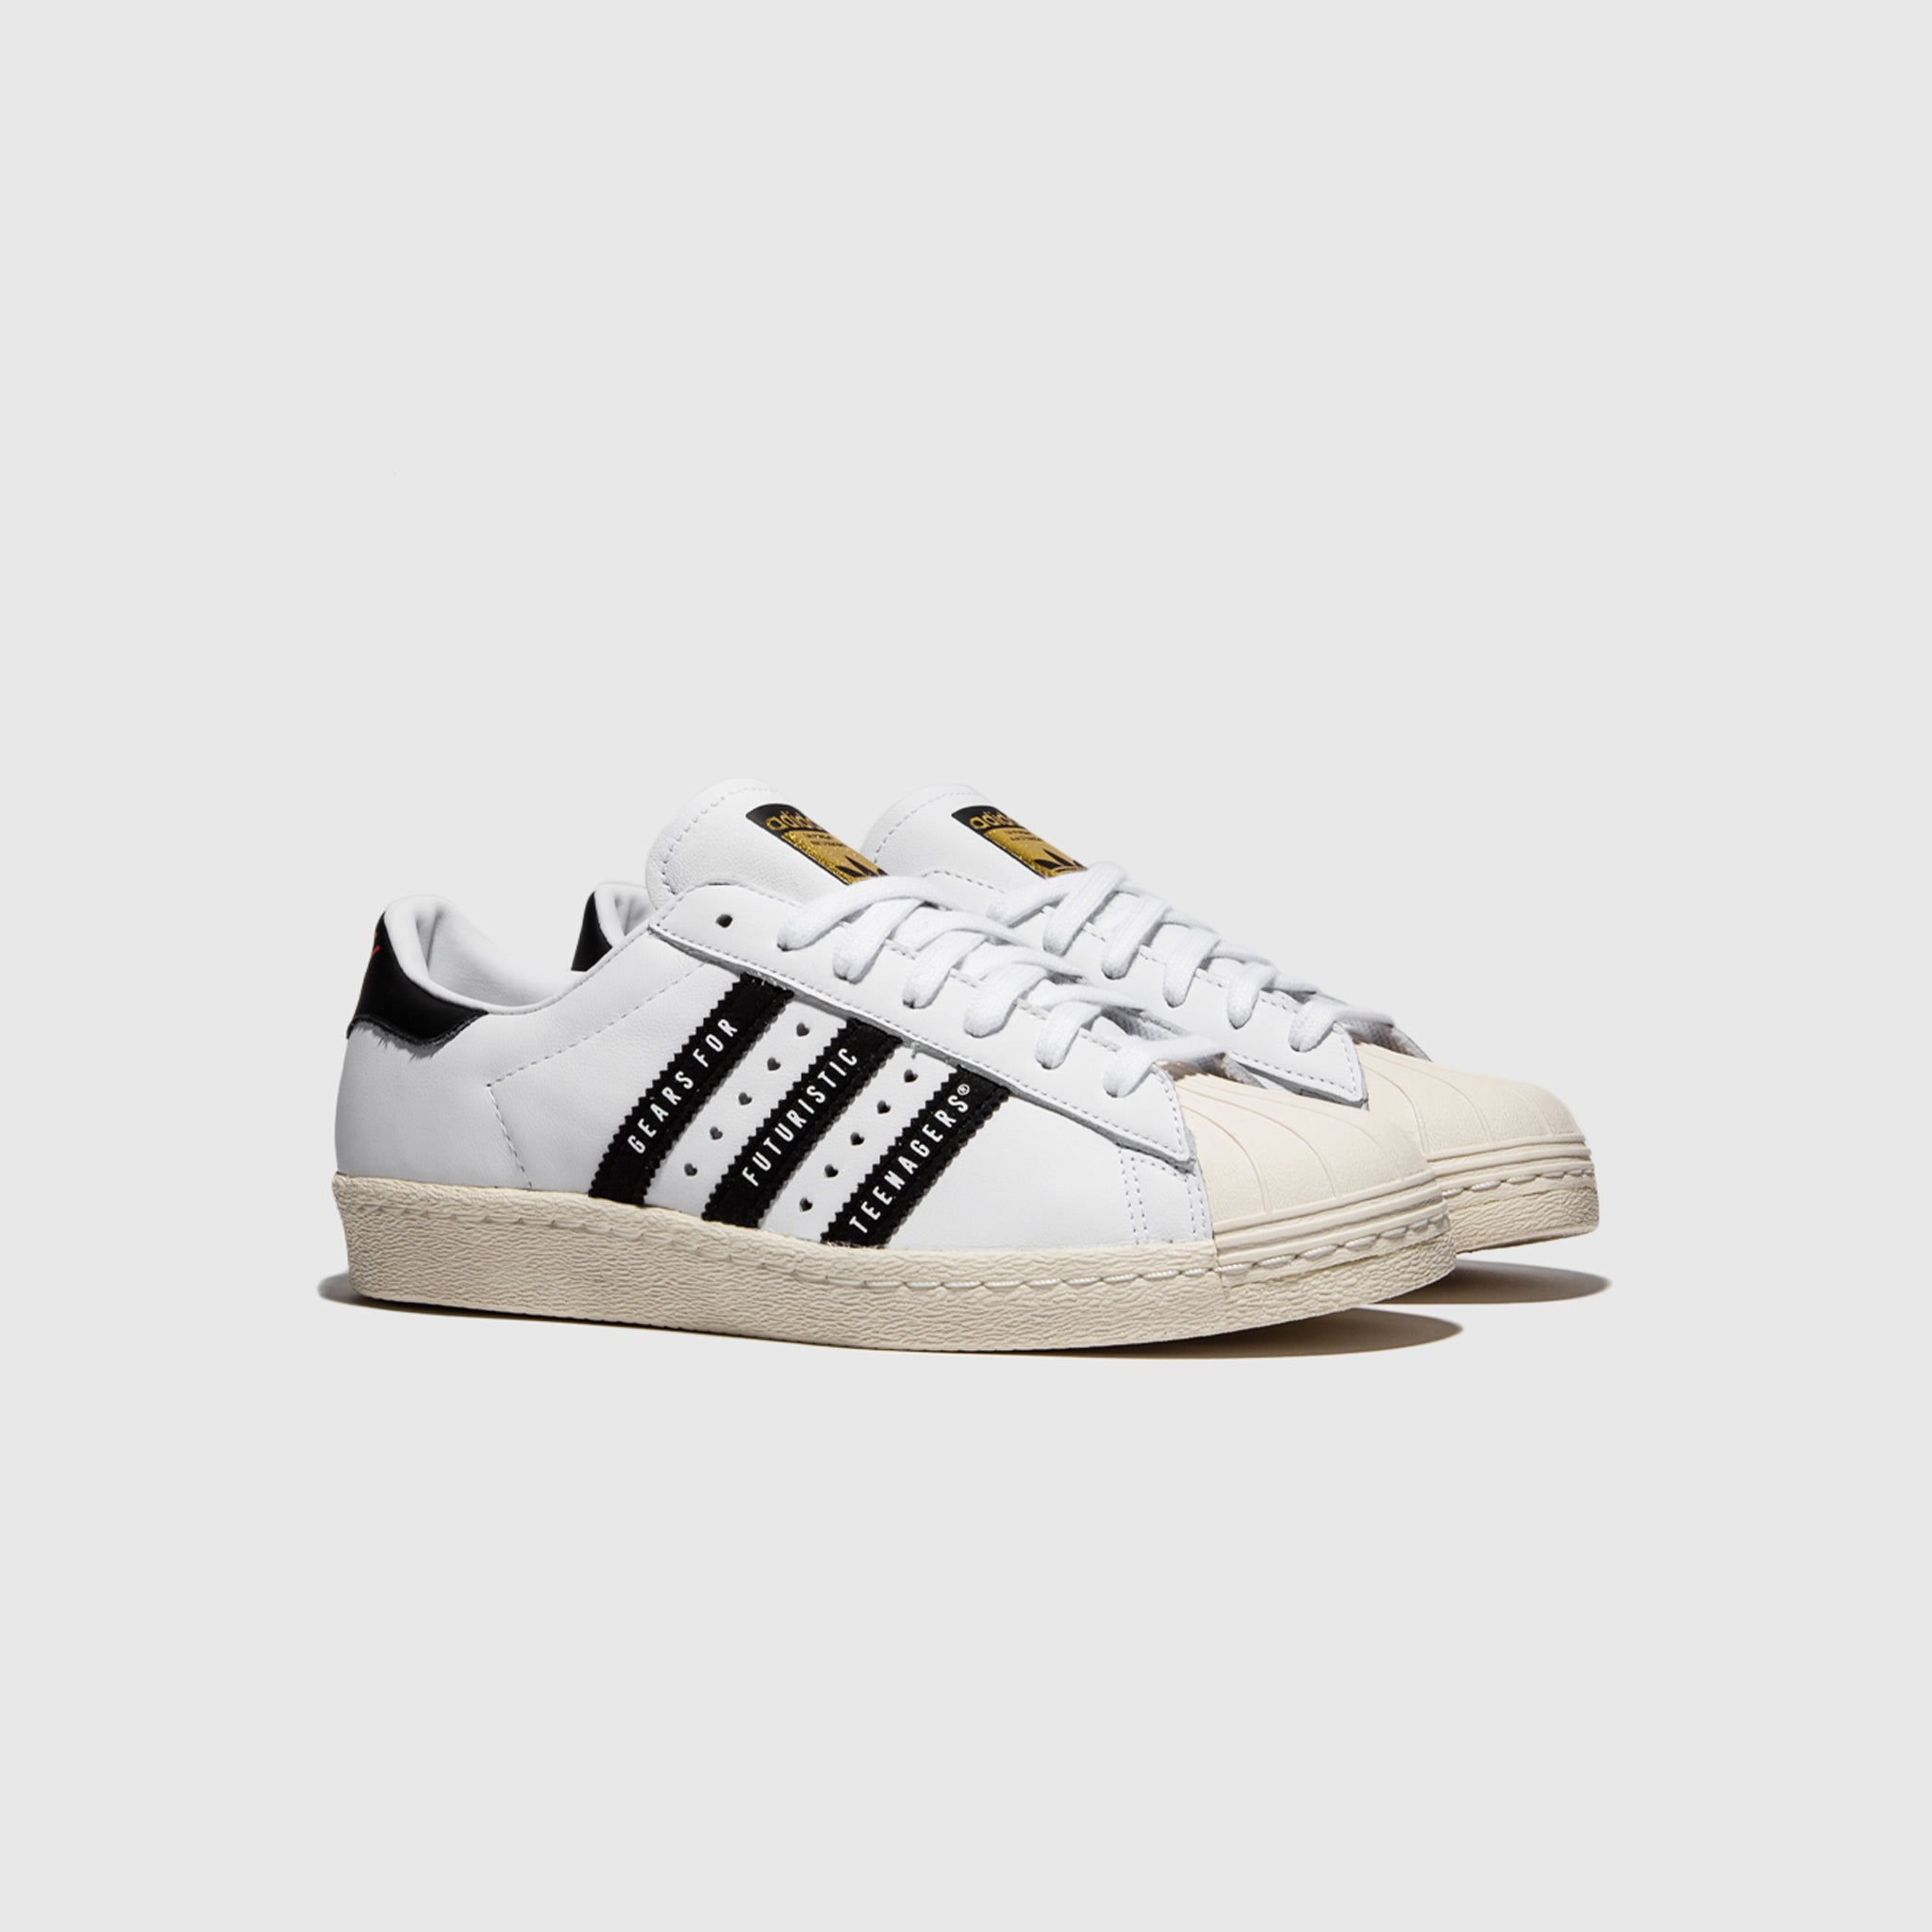 ADIDAS ORIGINALS SUPERSTAR 80S X HUMAN MADE